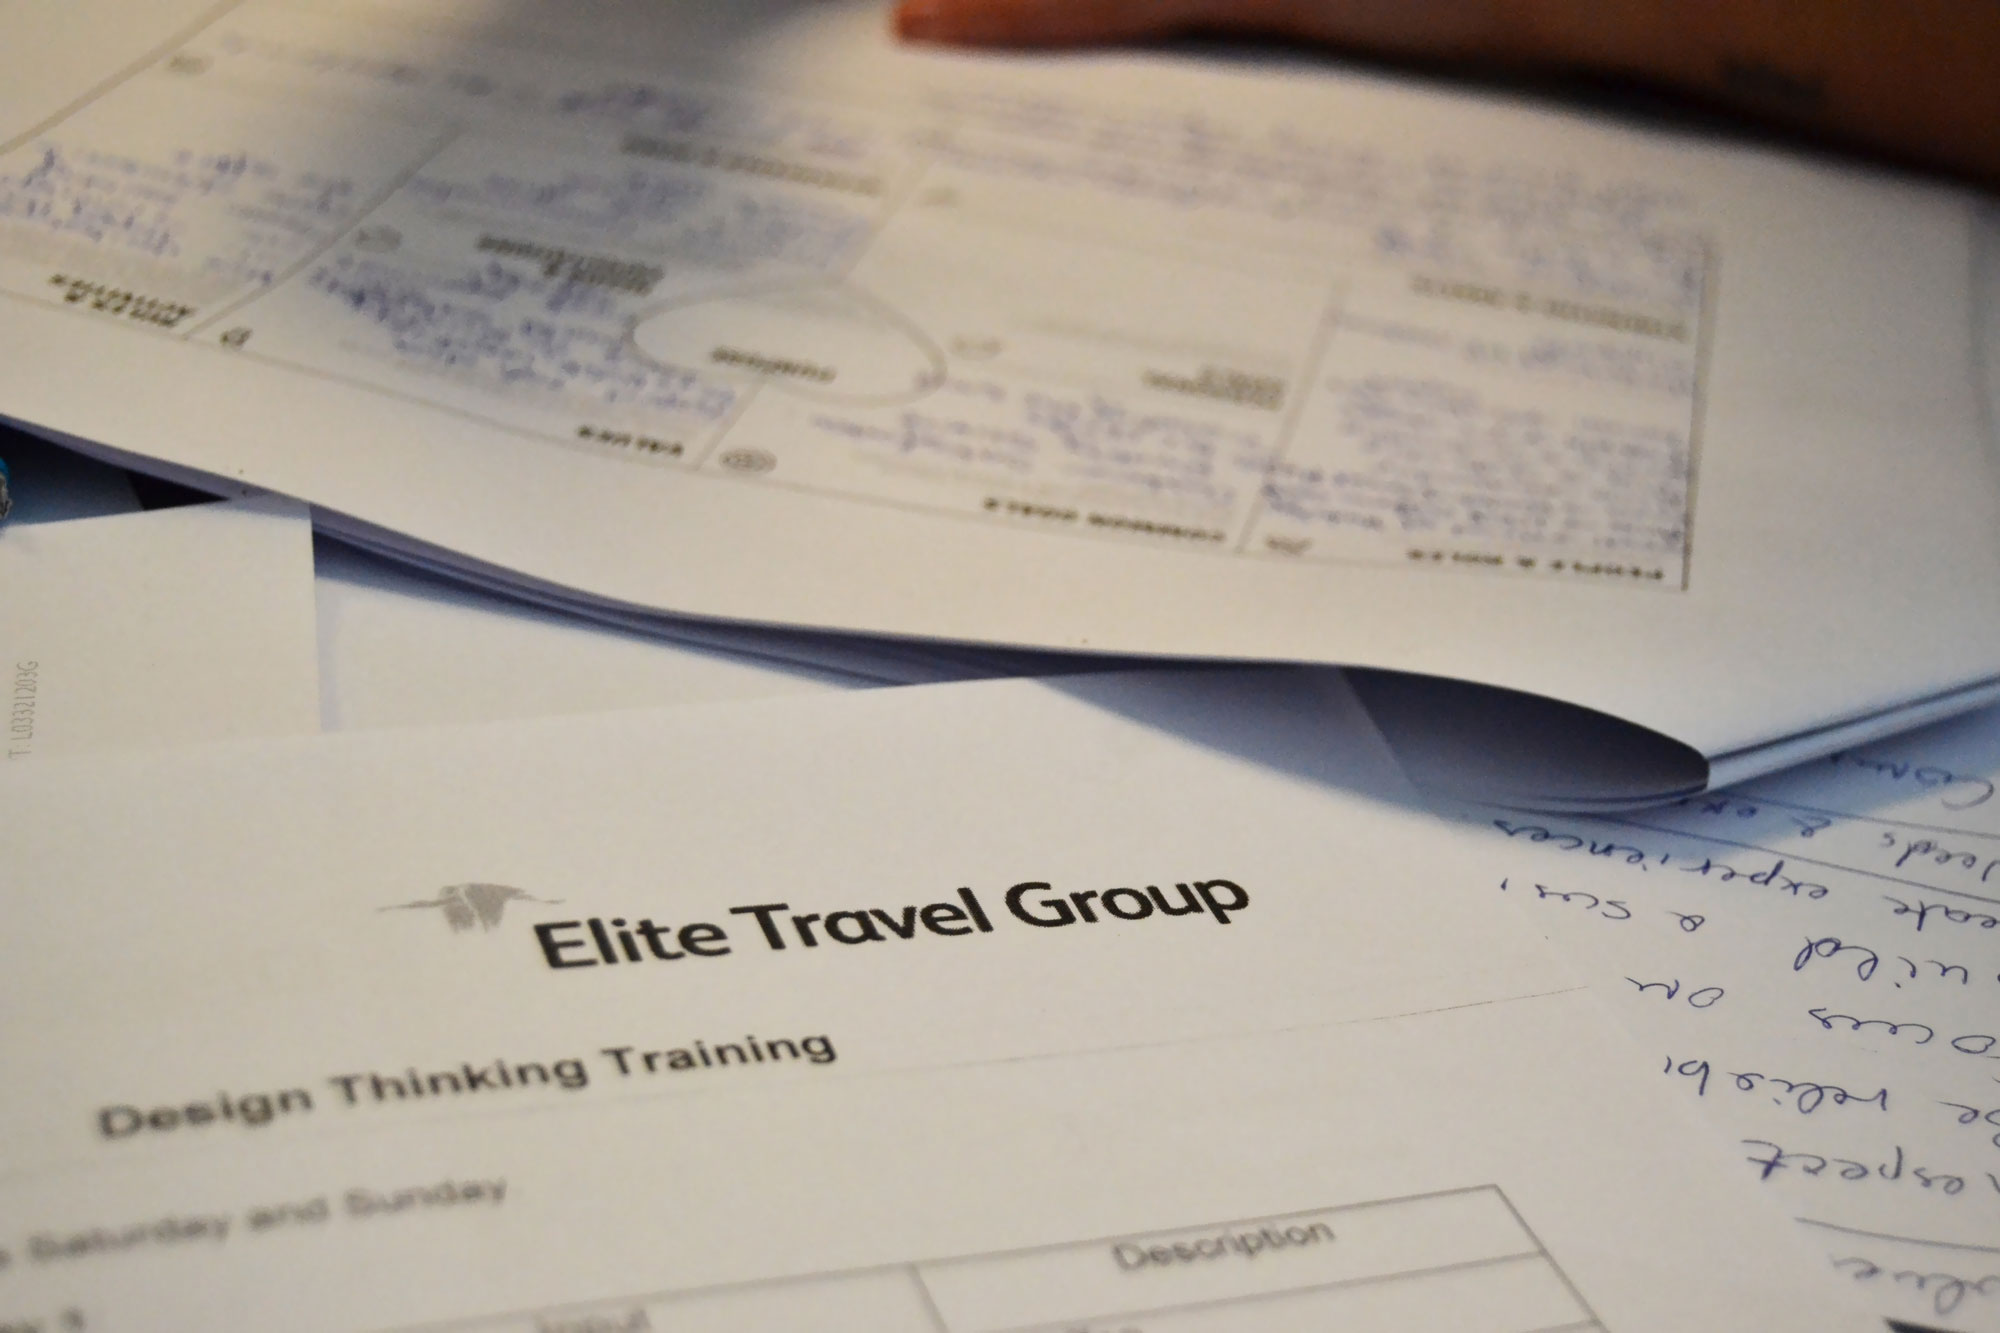 Elite Travel Group documents